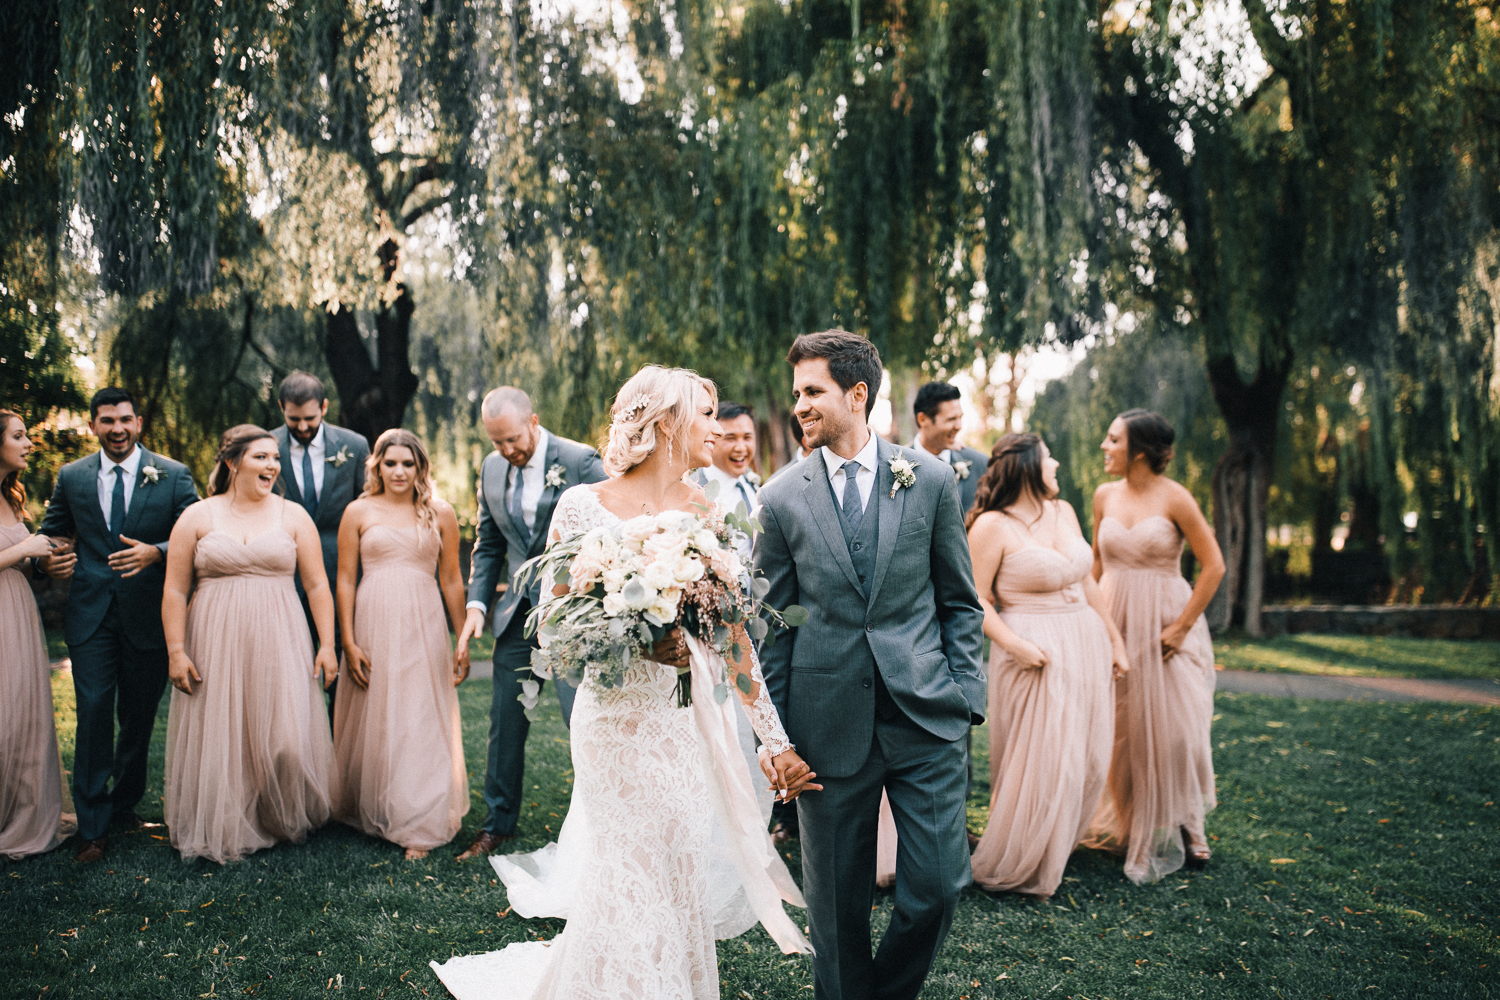 2018_08_ 112018.08.11 Cline Vinyard Wedding Blog Photos Edited For Web 0048.jpg